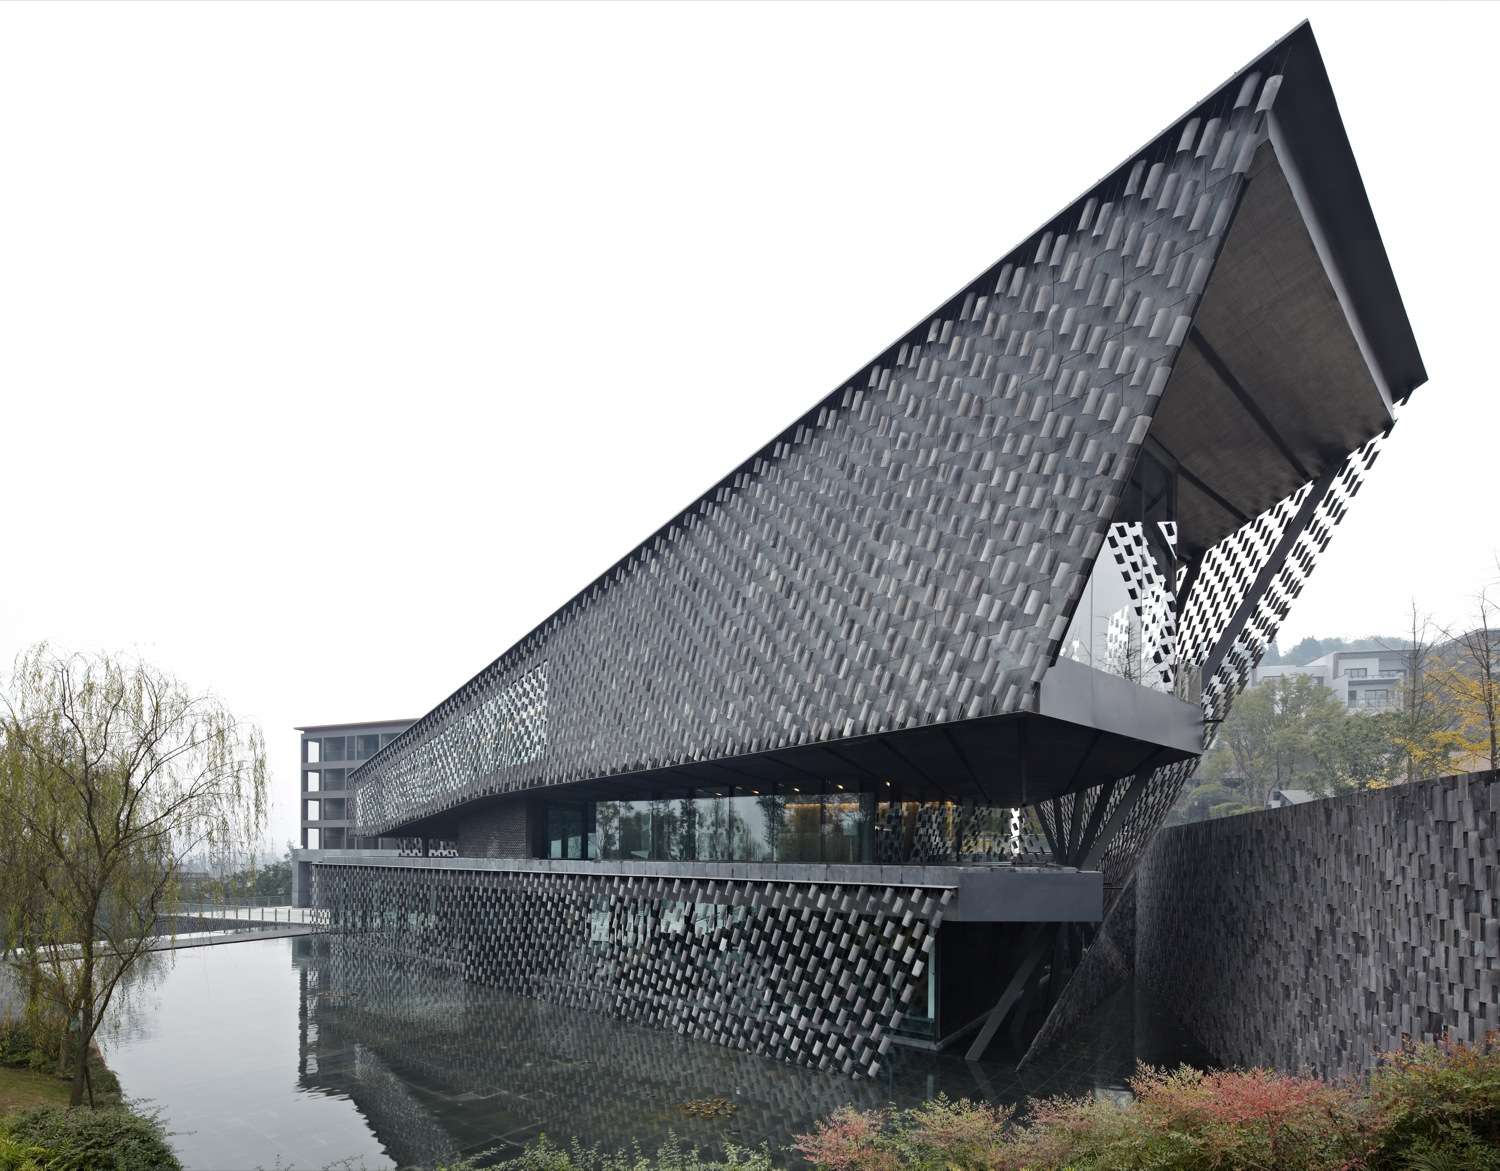 Xinjin Zhi Museum / Kengo Kuma & Associates, Courtesy of  kengo kuma & associates